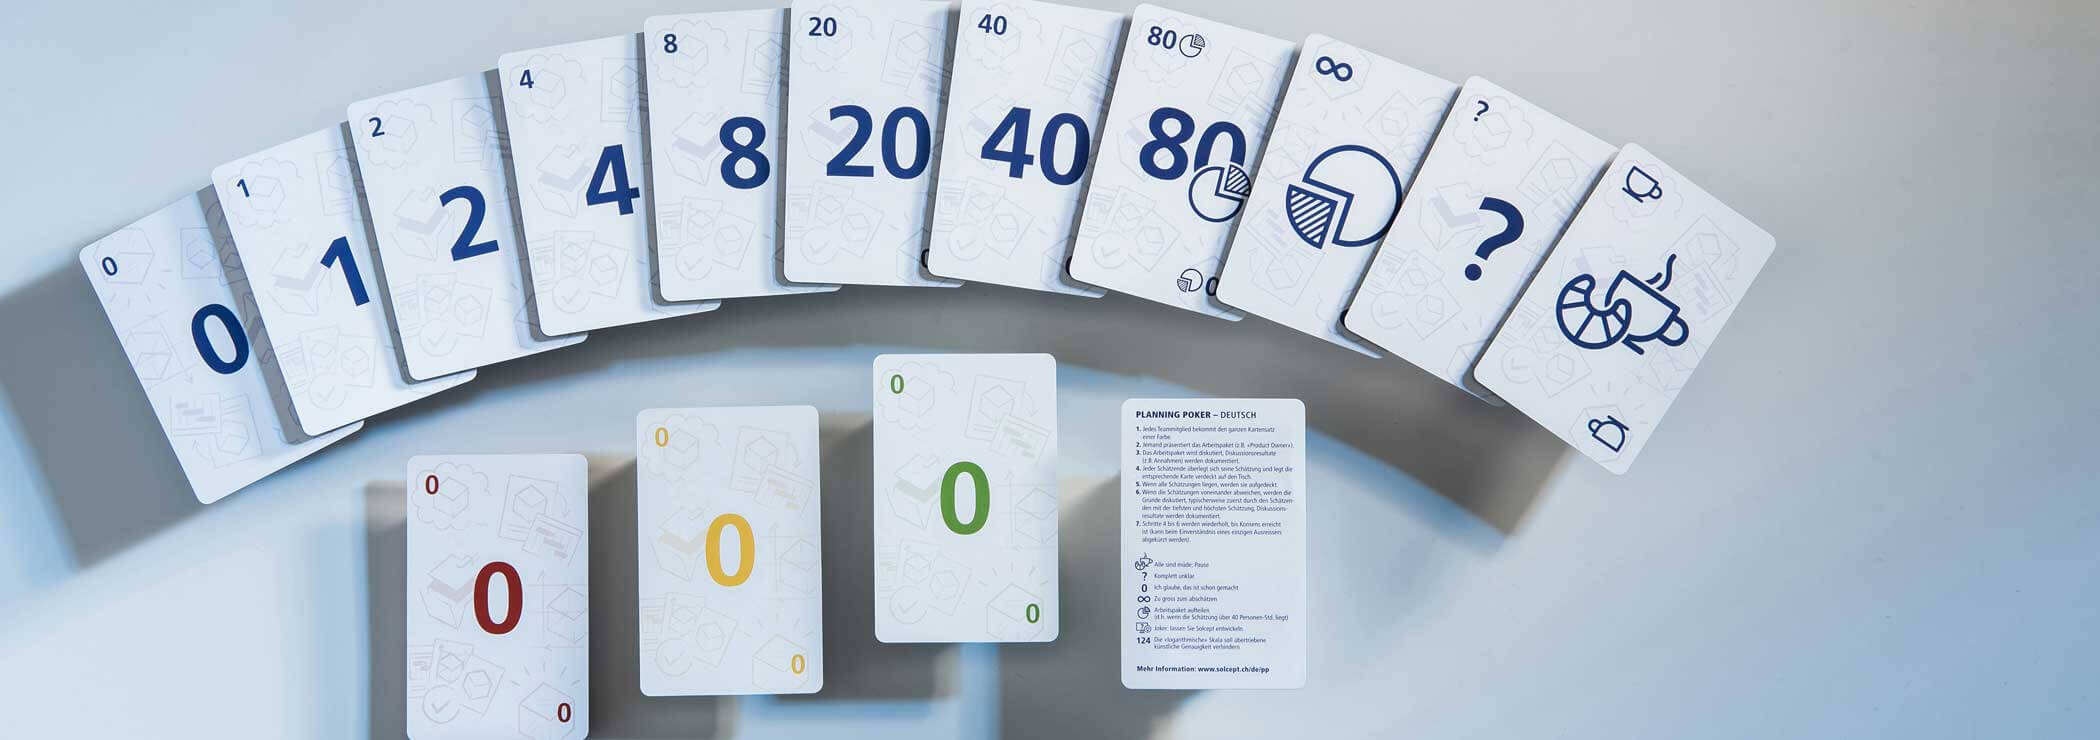 Instructions For Planning Poker Intended For Planning Poker Cards Template